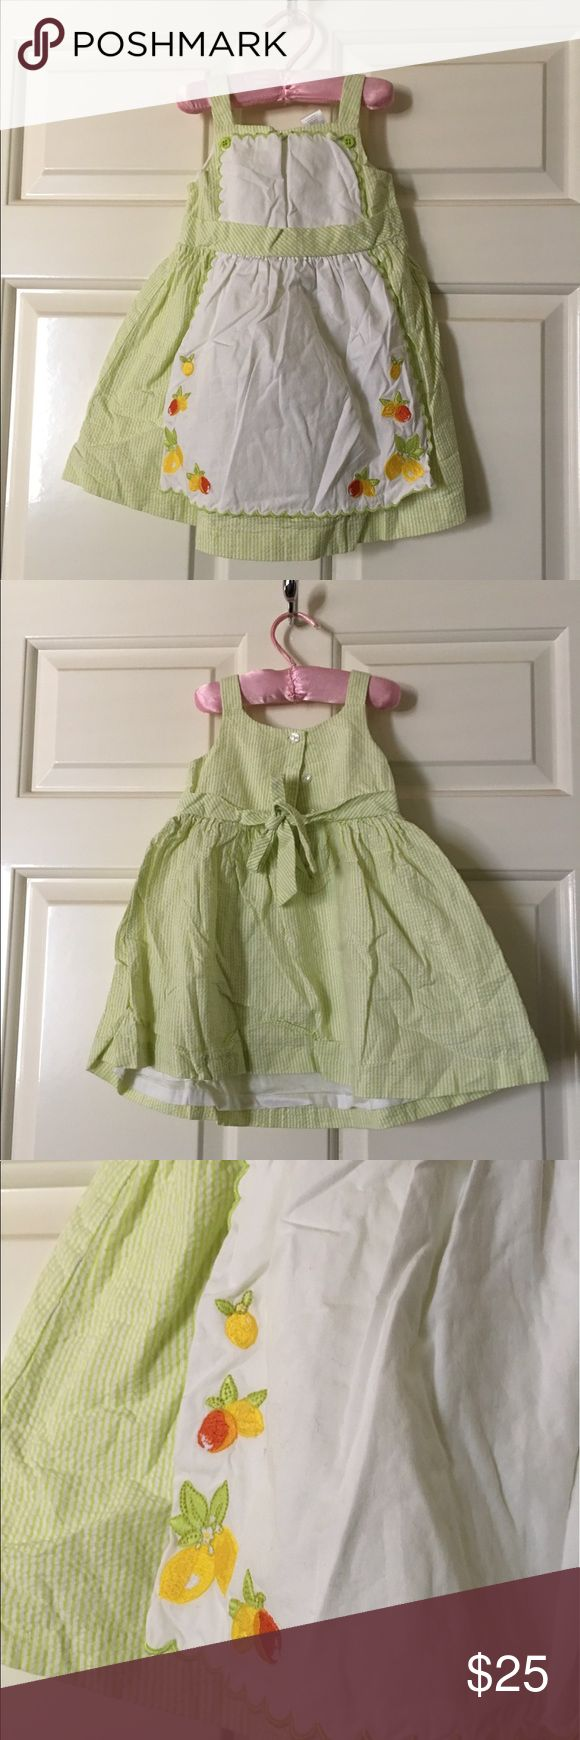 Janie and Jack Lemon 🍋 Apron Striped Dress Perfect for summer.  Adorable apron dress. Green and white pinstriped dress 👗 100% cotton. Janie and Jack Dresses Casual